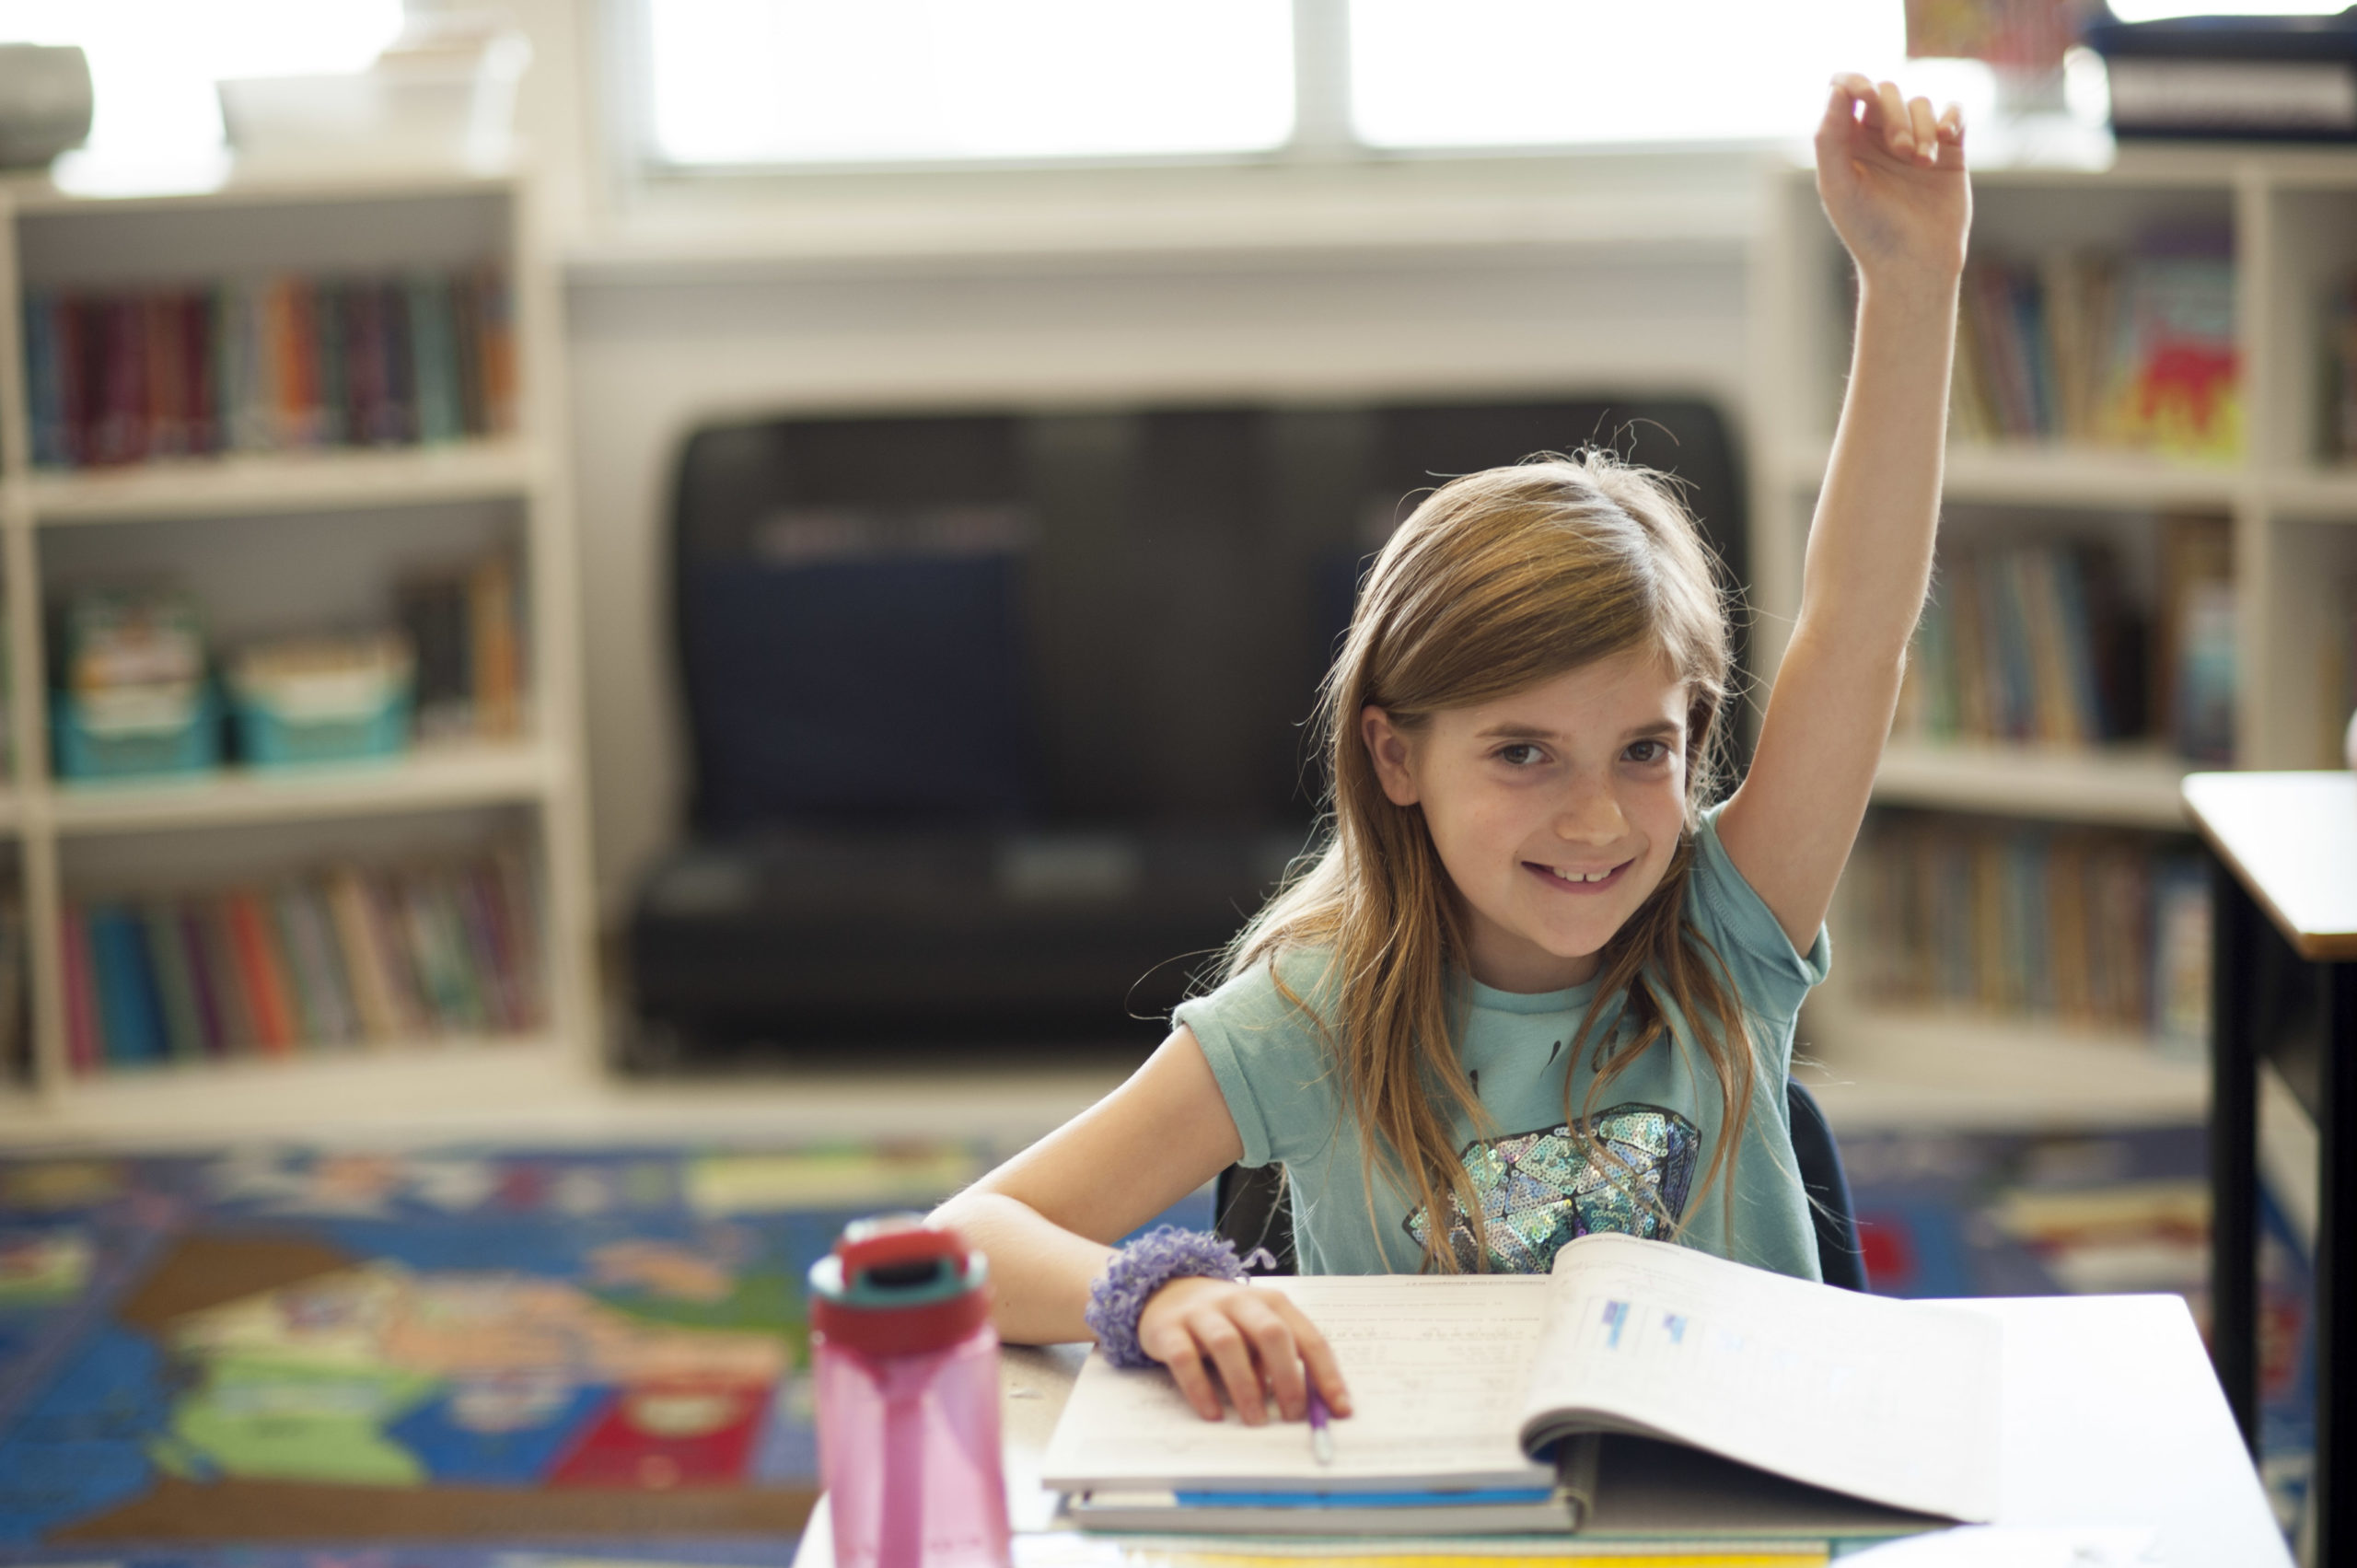 Smiling child in a classroom with hand raised